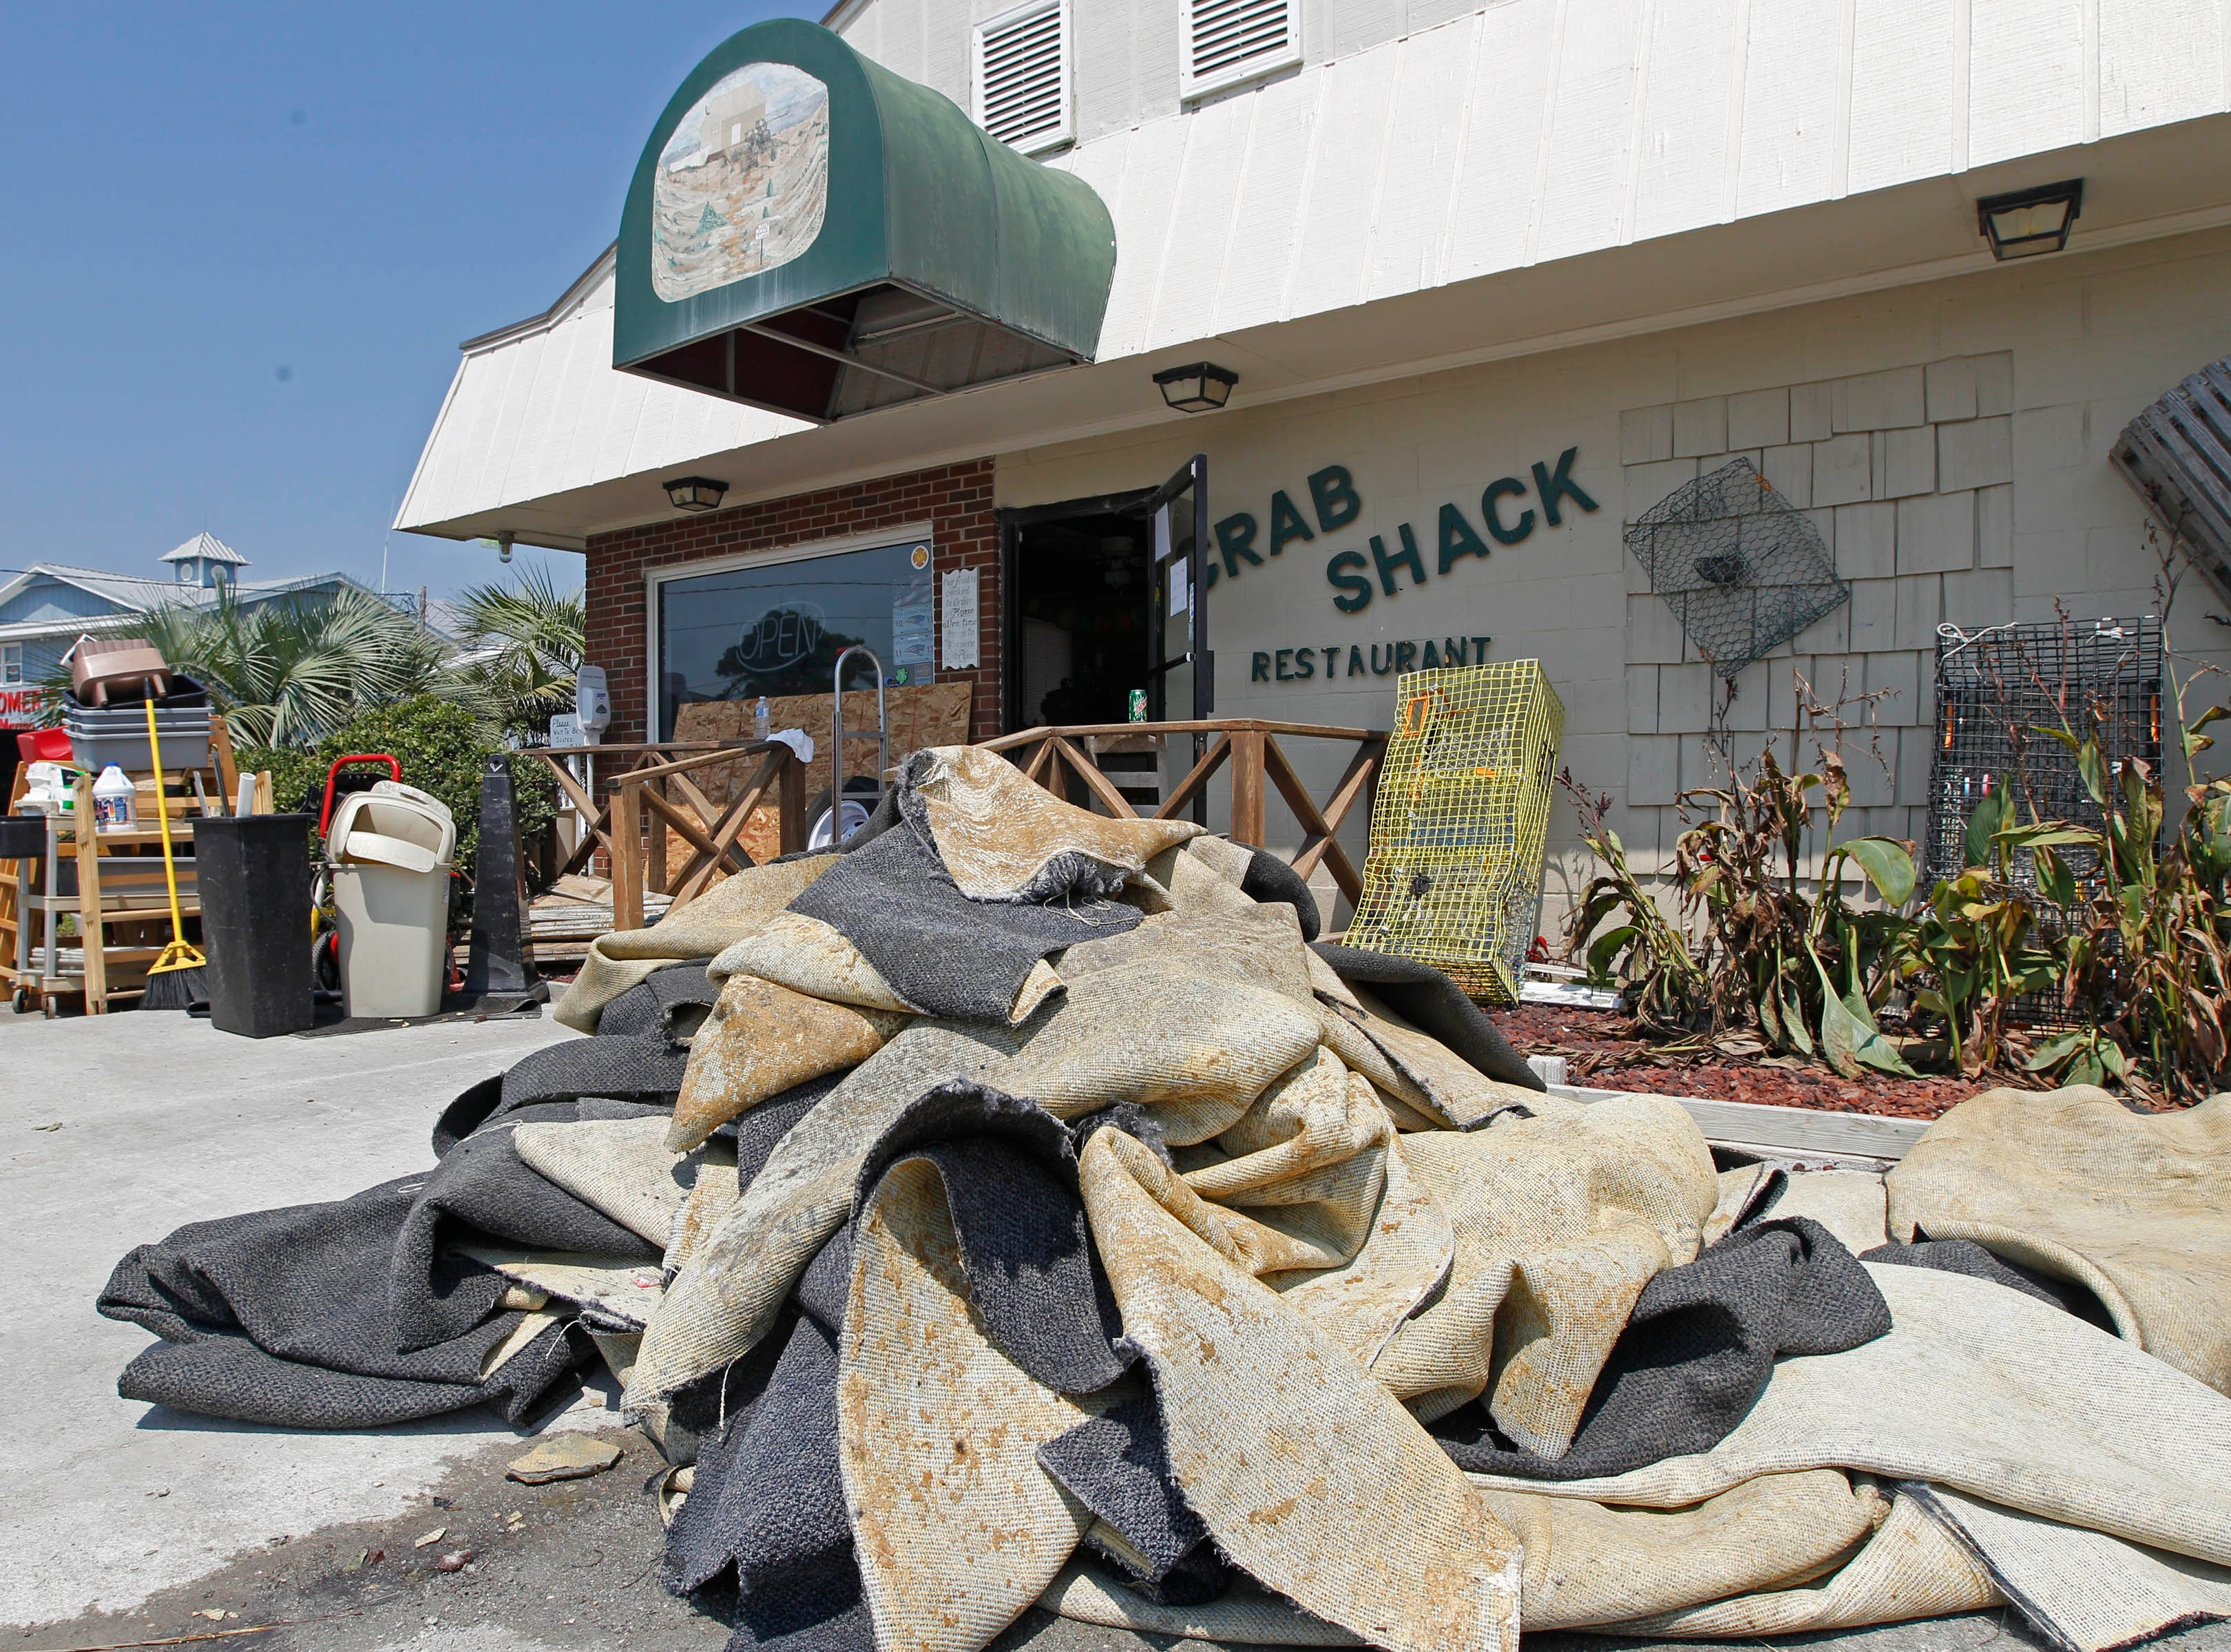 Water-soaked carpet and furniture sit outside the Crab Shack restaurant in Salter Path, N.C., Monday, Aug. 29, 2011. As more roads opened and the power came back two days after Hurricane Irene swept through, people who depend on tourists for their livelihoods had no guarantee whether visitors would come for summer's traditional last hurrah. (AP Photo/Chuck Burton)